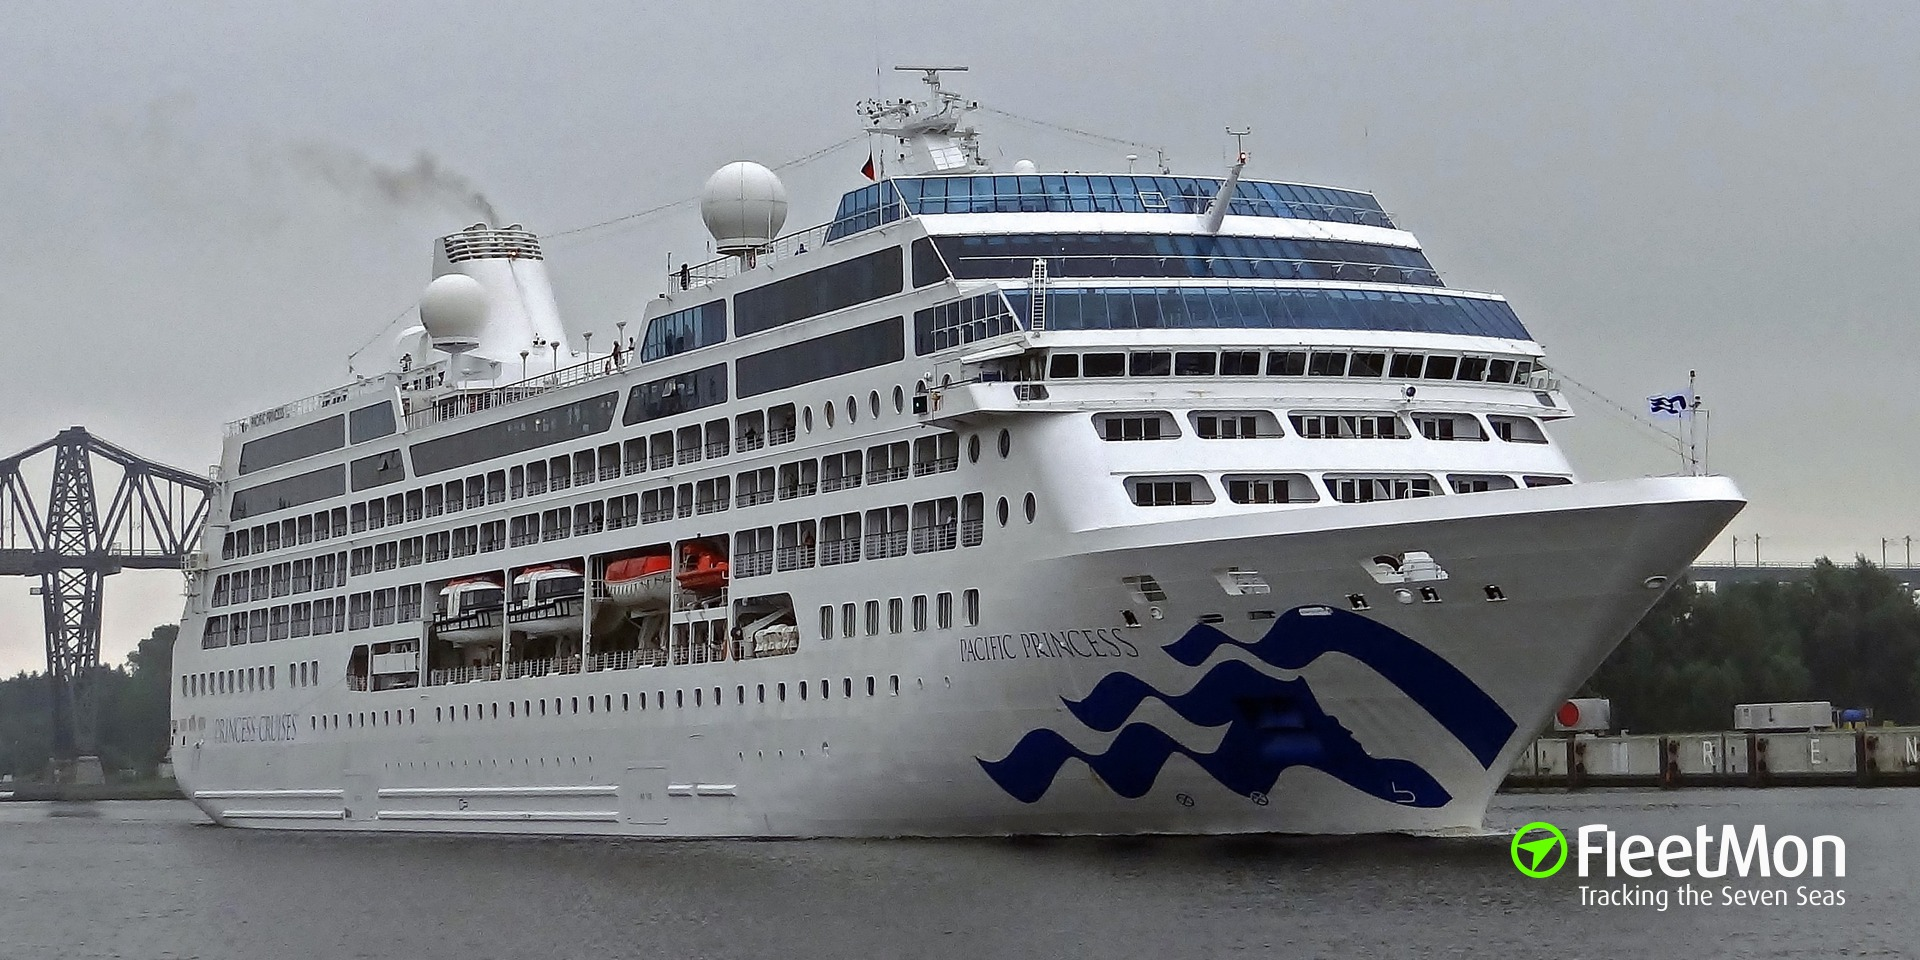 Cruise ship PACIFIC PRINCESS hit breakwater in Nice, cruise cancelled